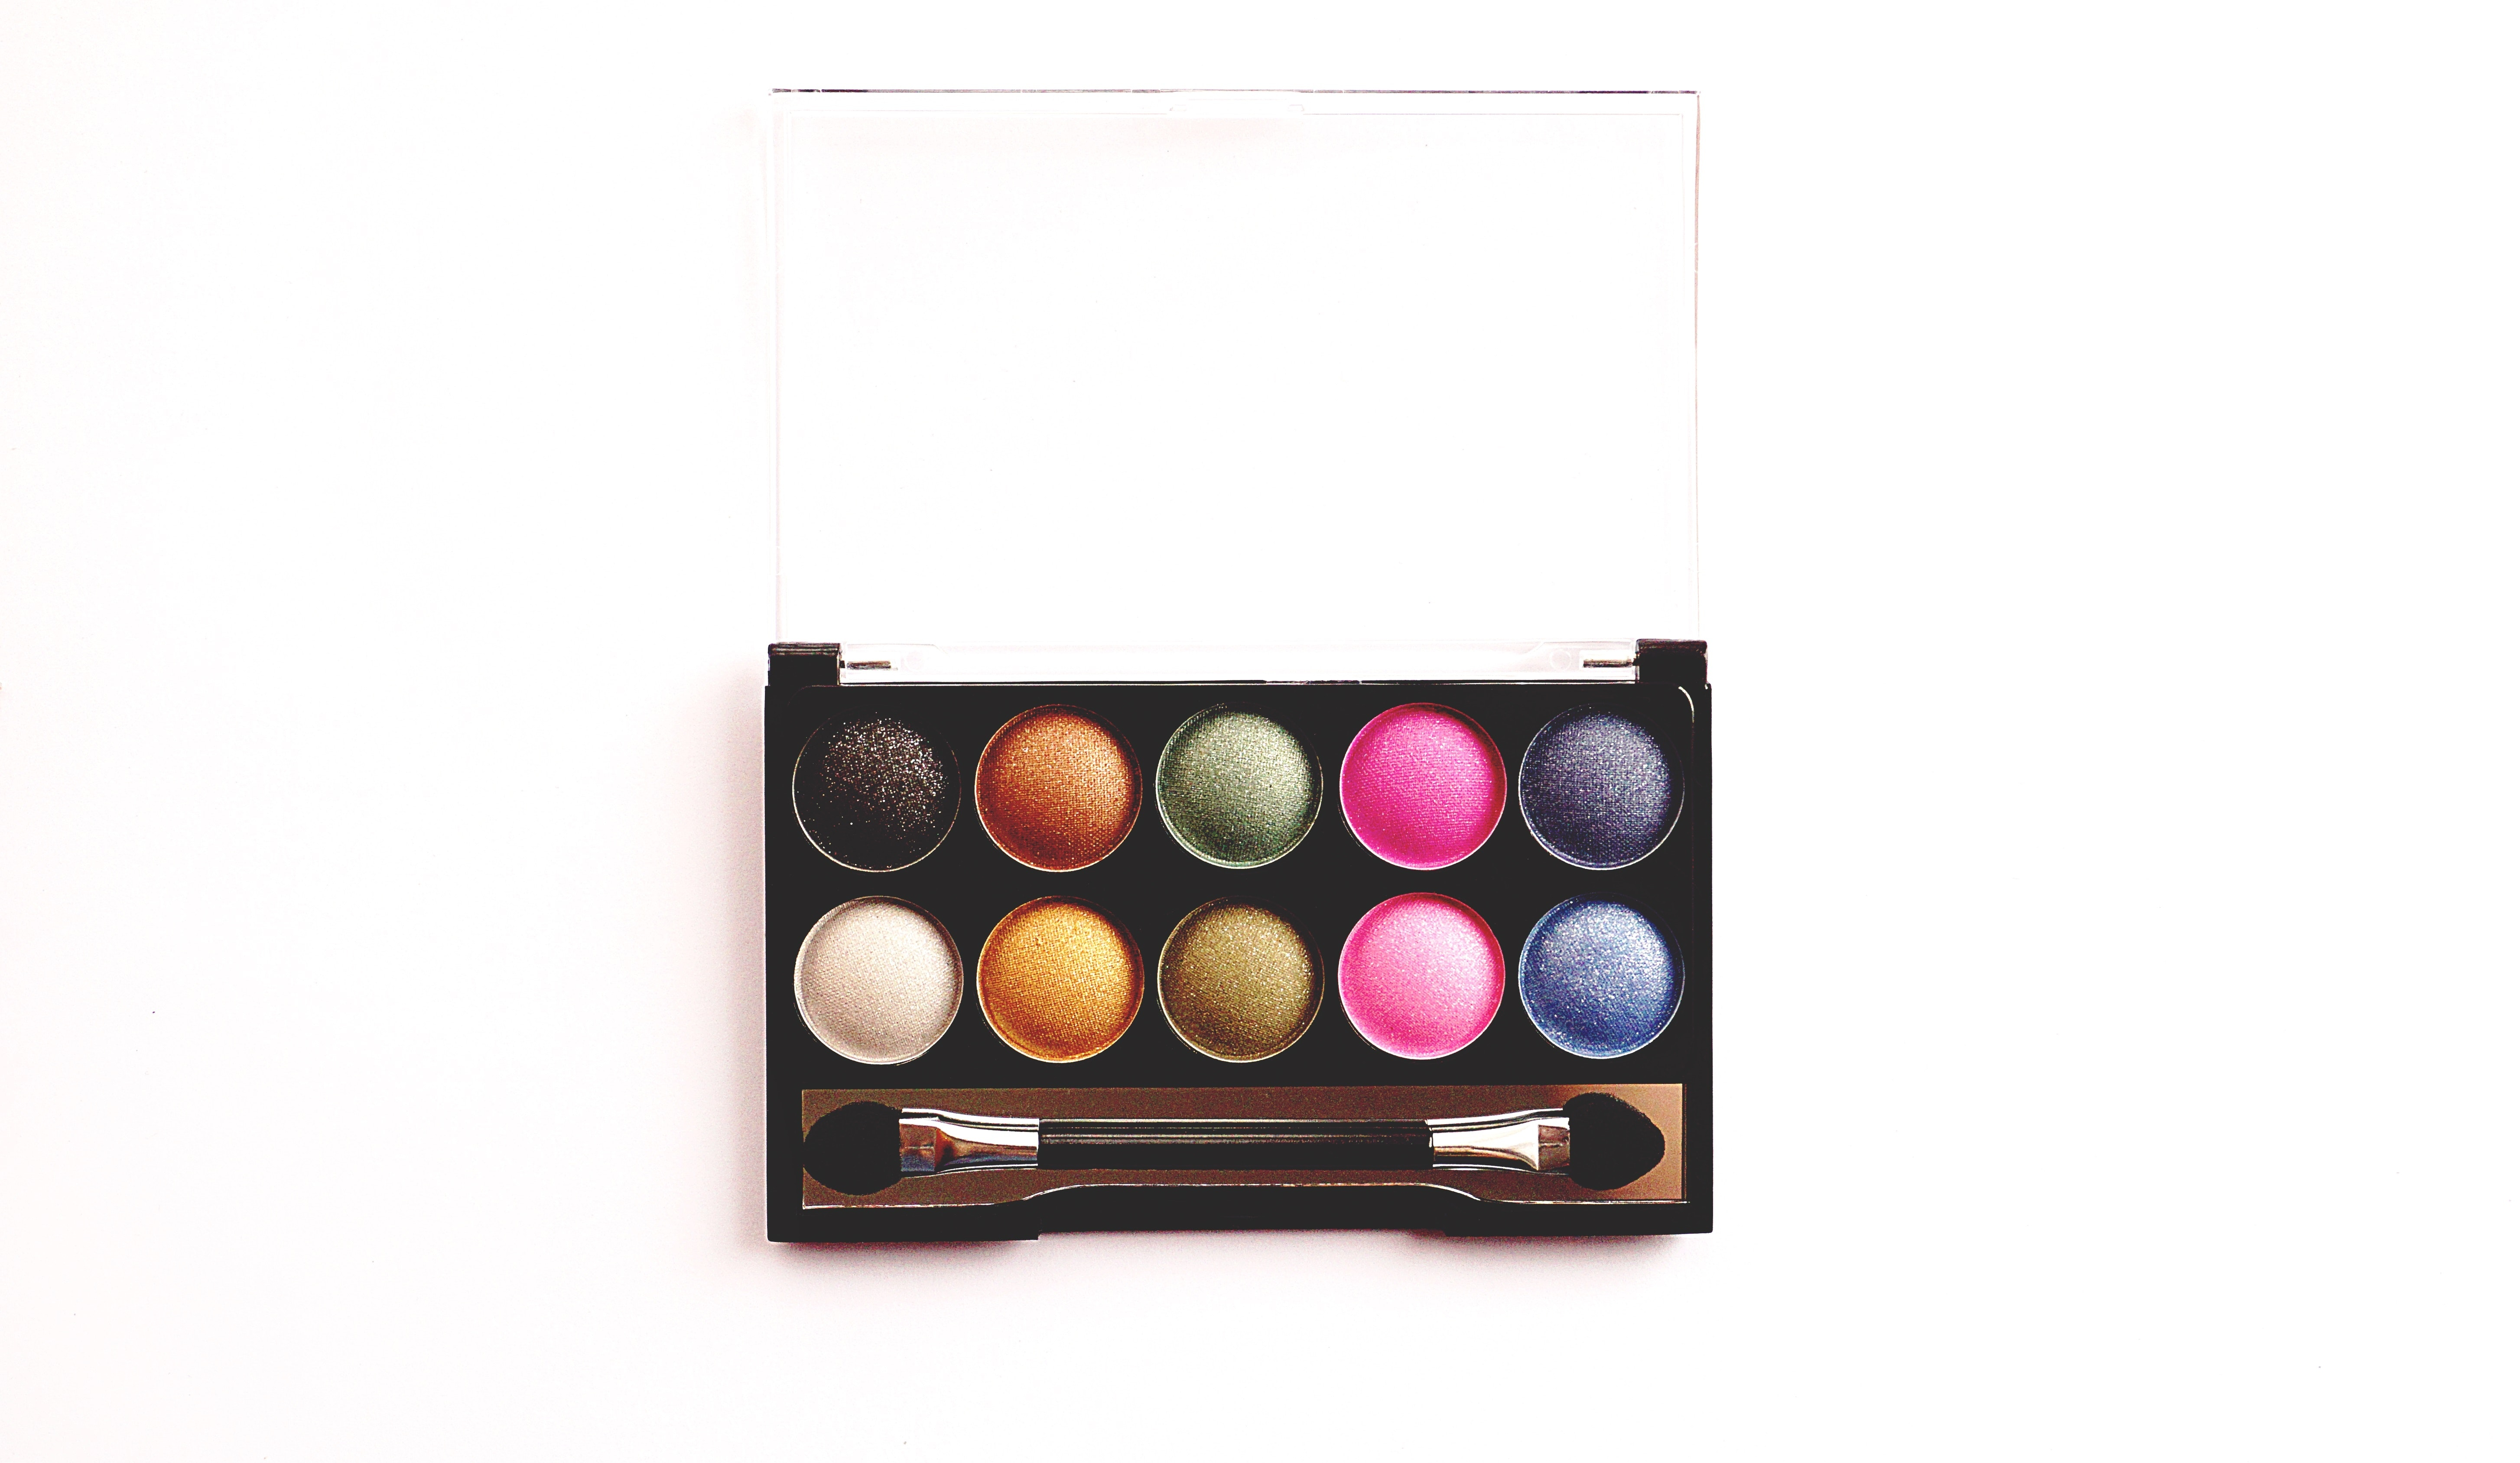 colorful-colourful-cosmetics-1340925.jpg